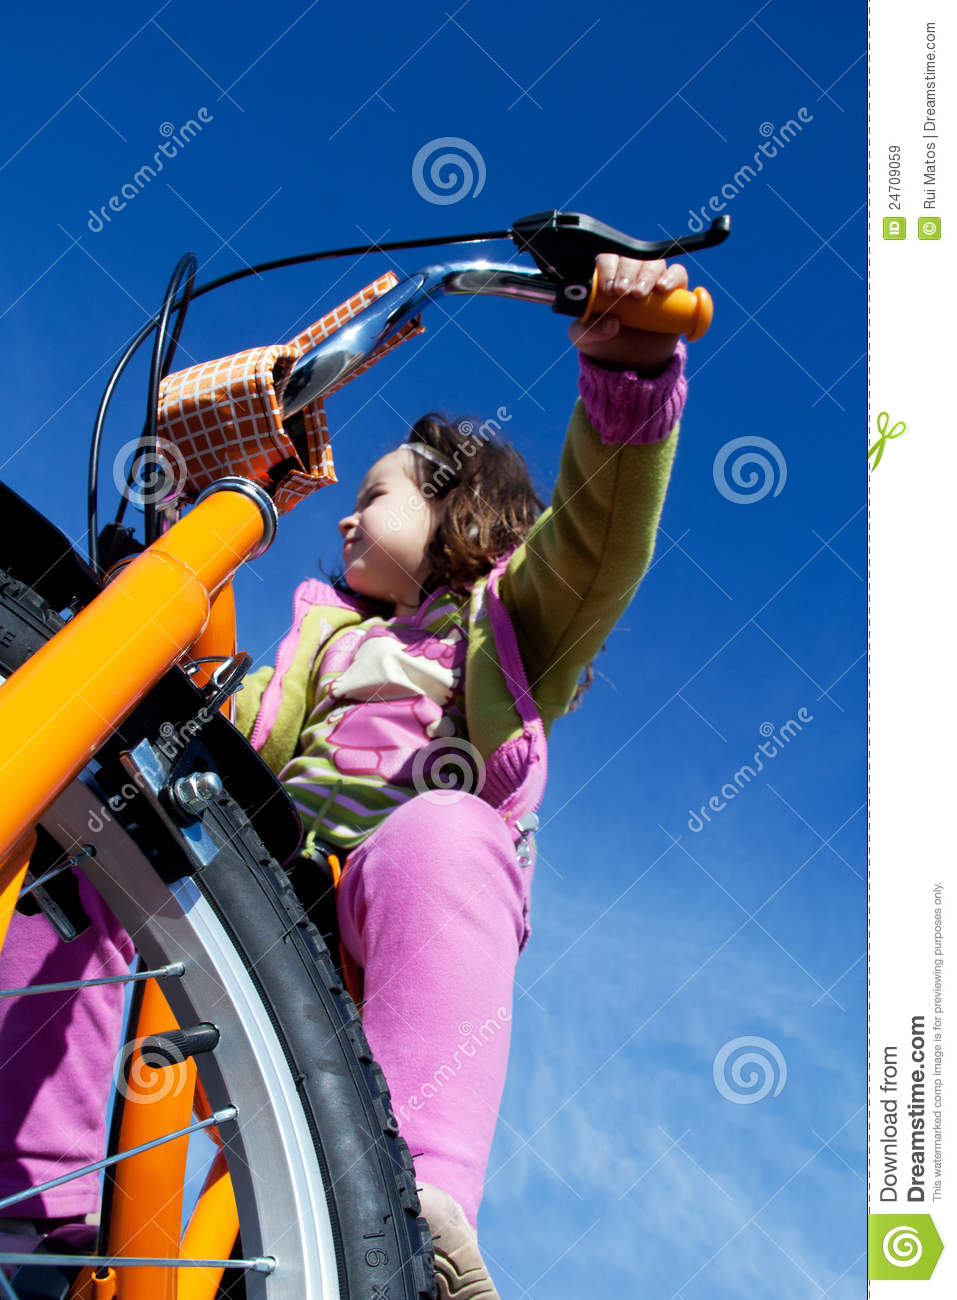 Bicycle Girl Royalty-Free Stock Image